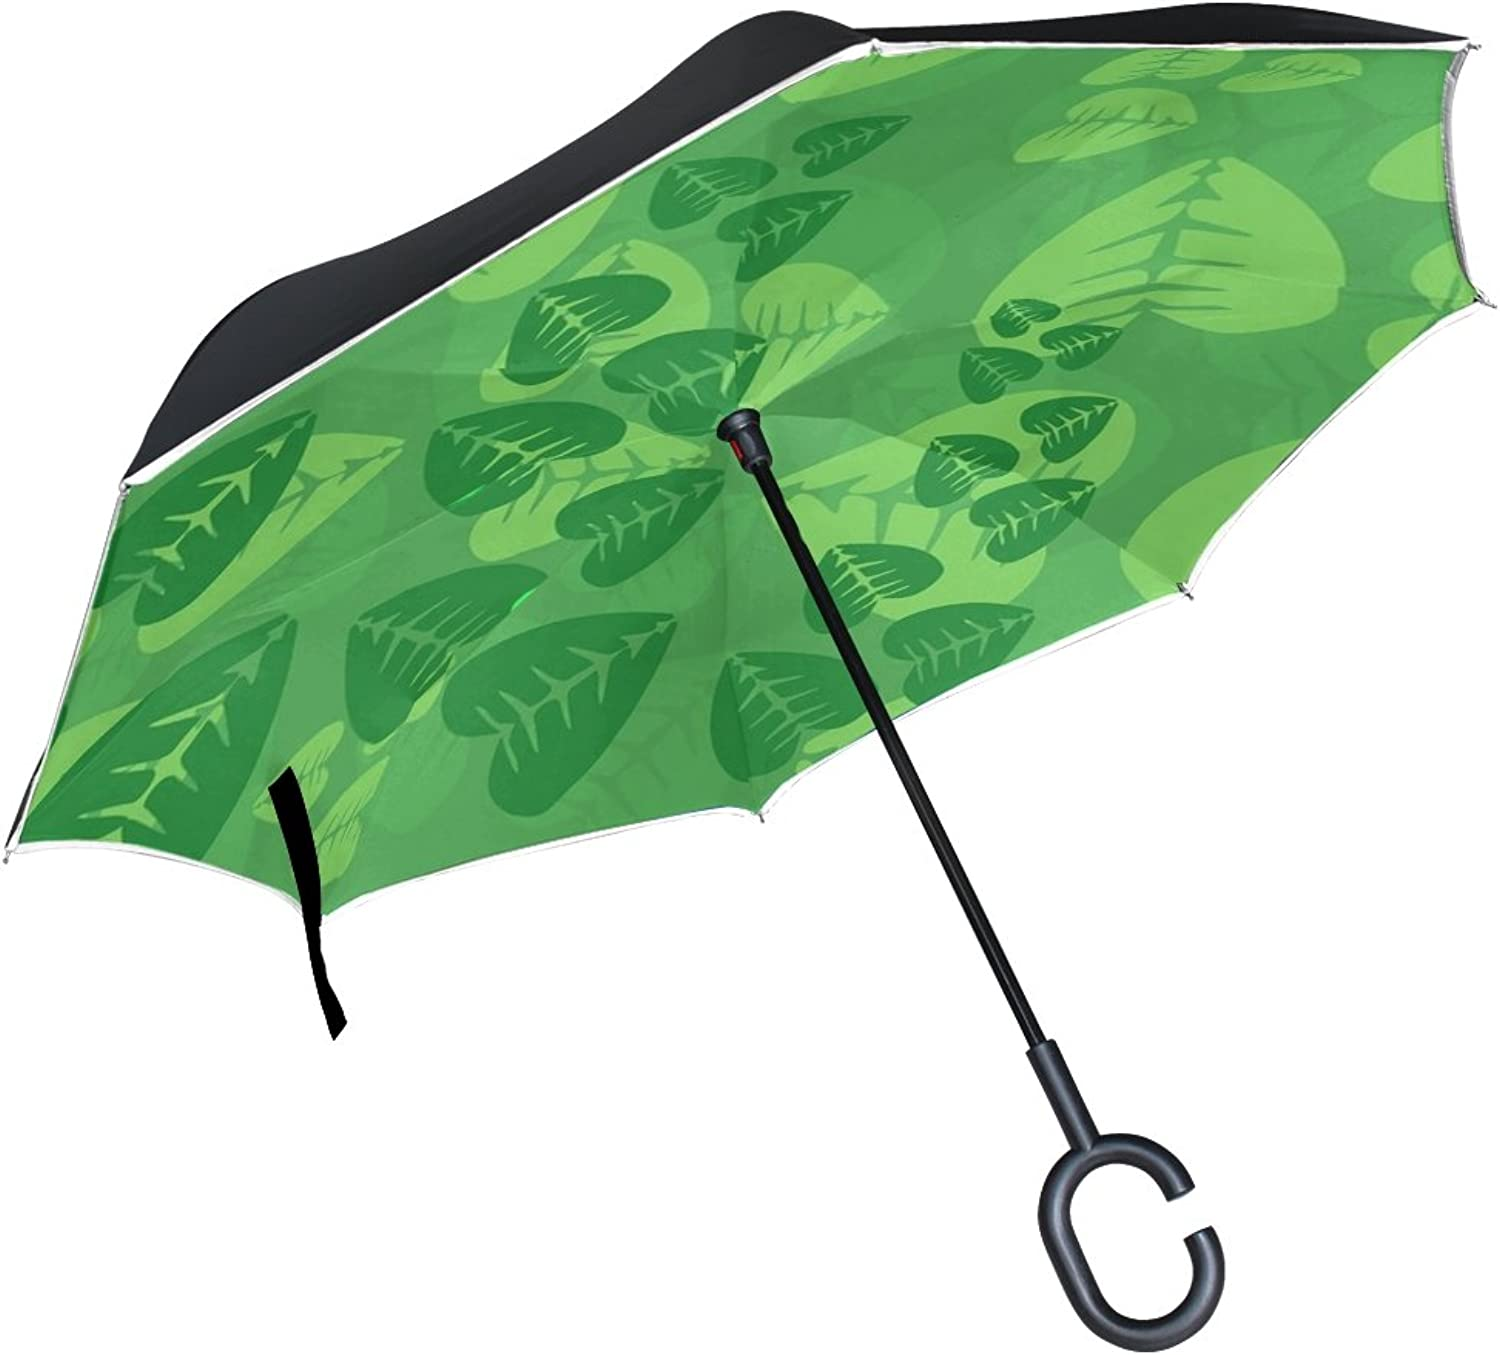 Double Layer Ingreened Leaves Leaf Green Spring Nature Umbrellas Reverse Folding Umbrella Windproof Uv Predection Big Straight Umbrella for Car Rain Outdoor with CShaped Handle